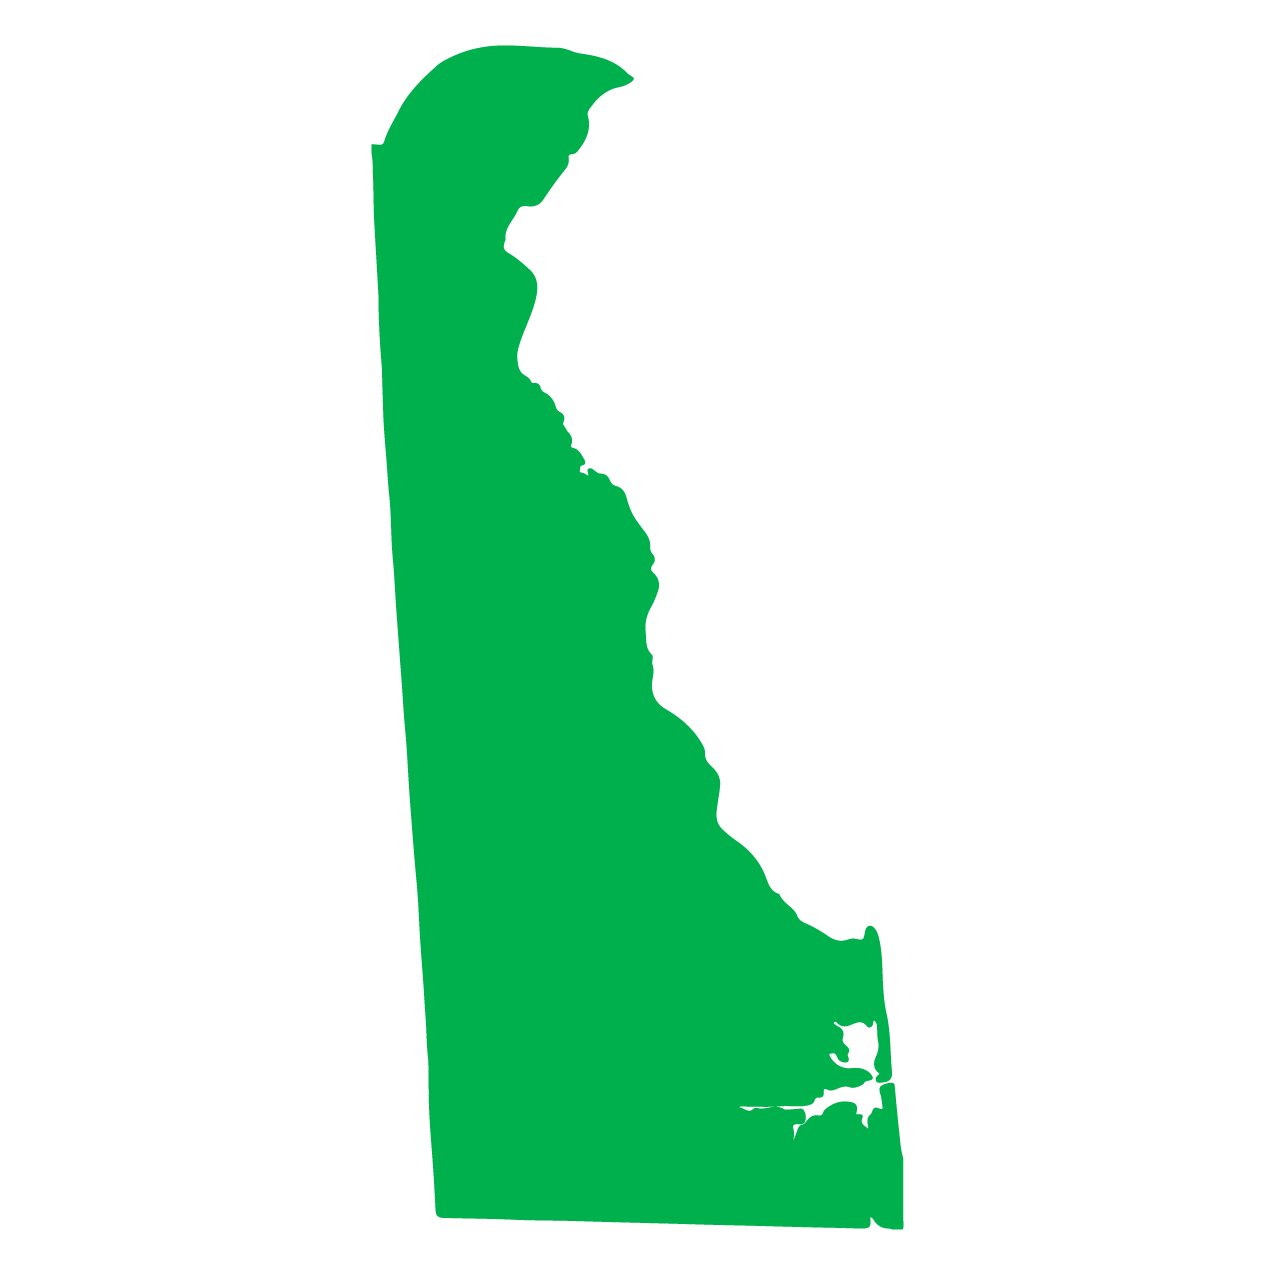 States_Delaware.png